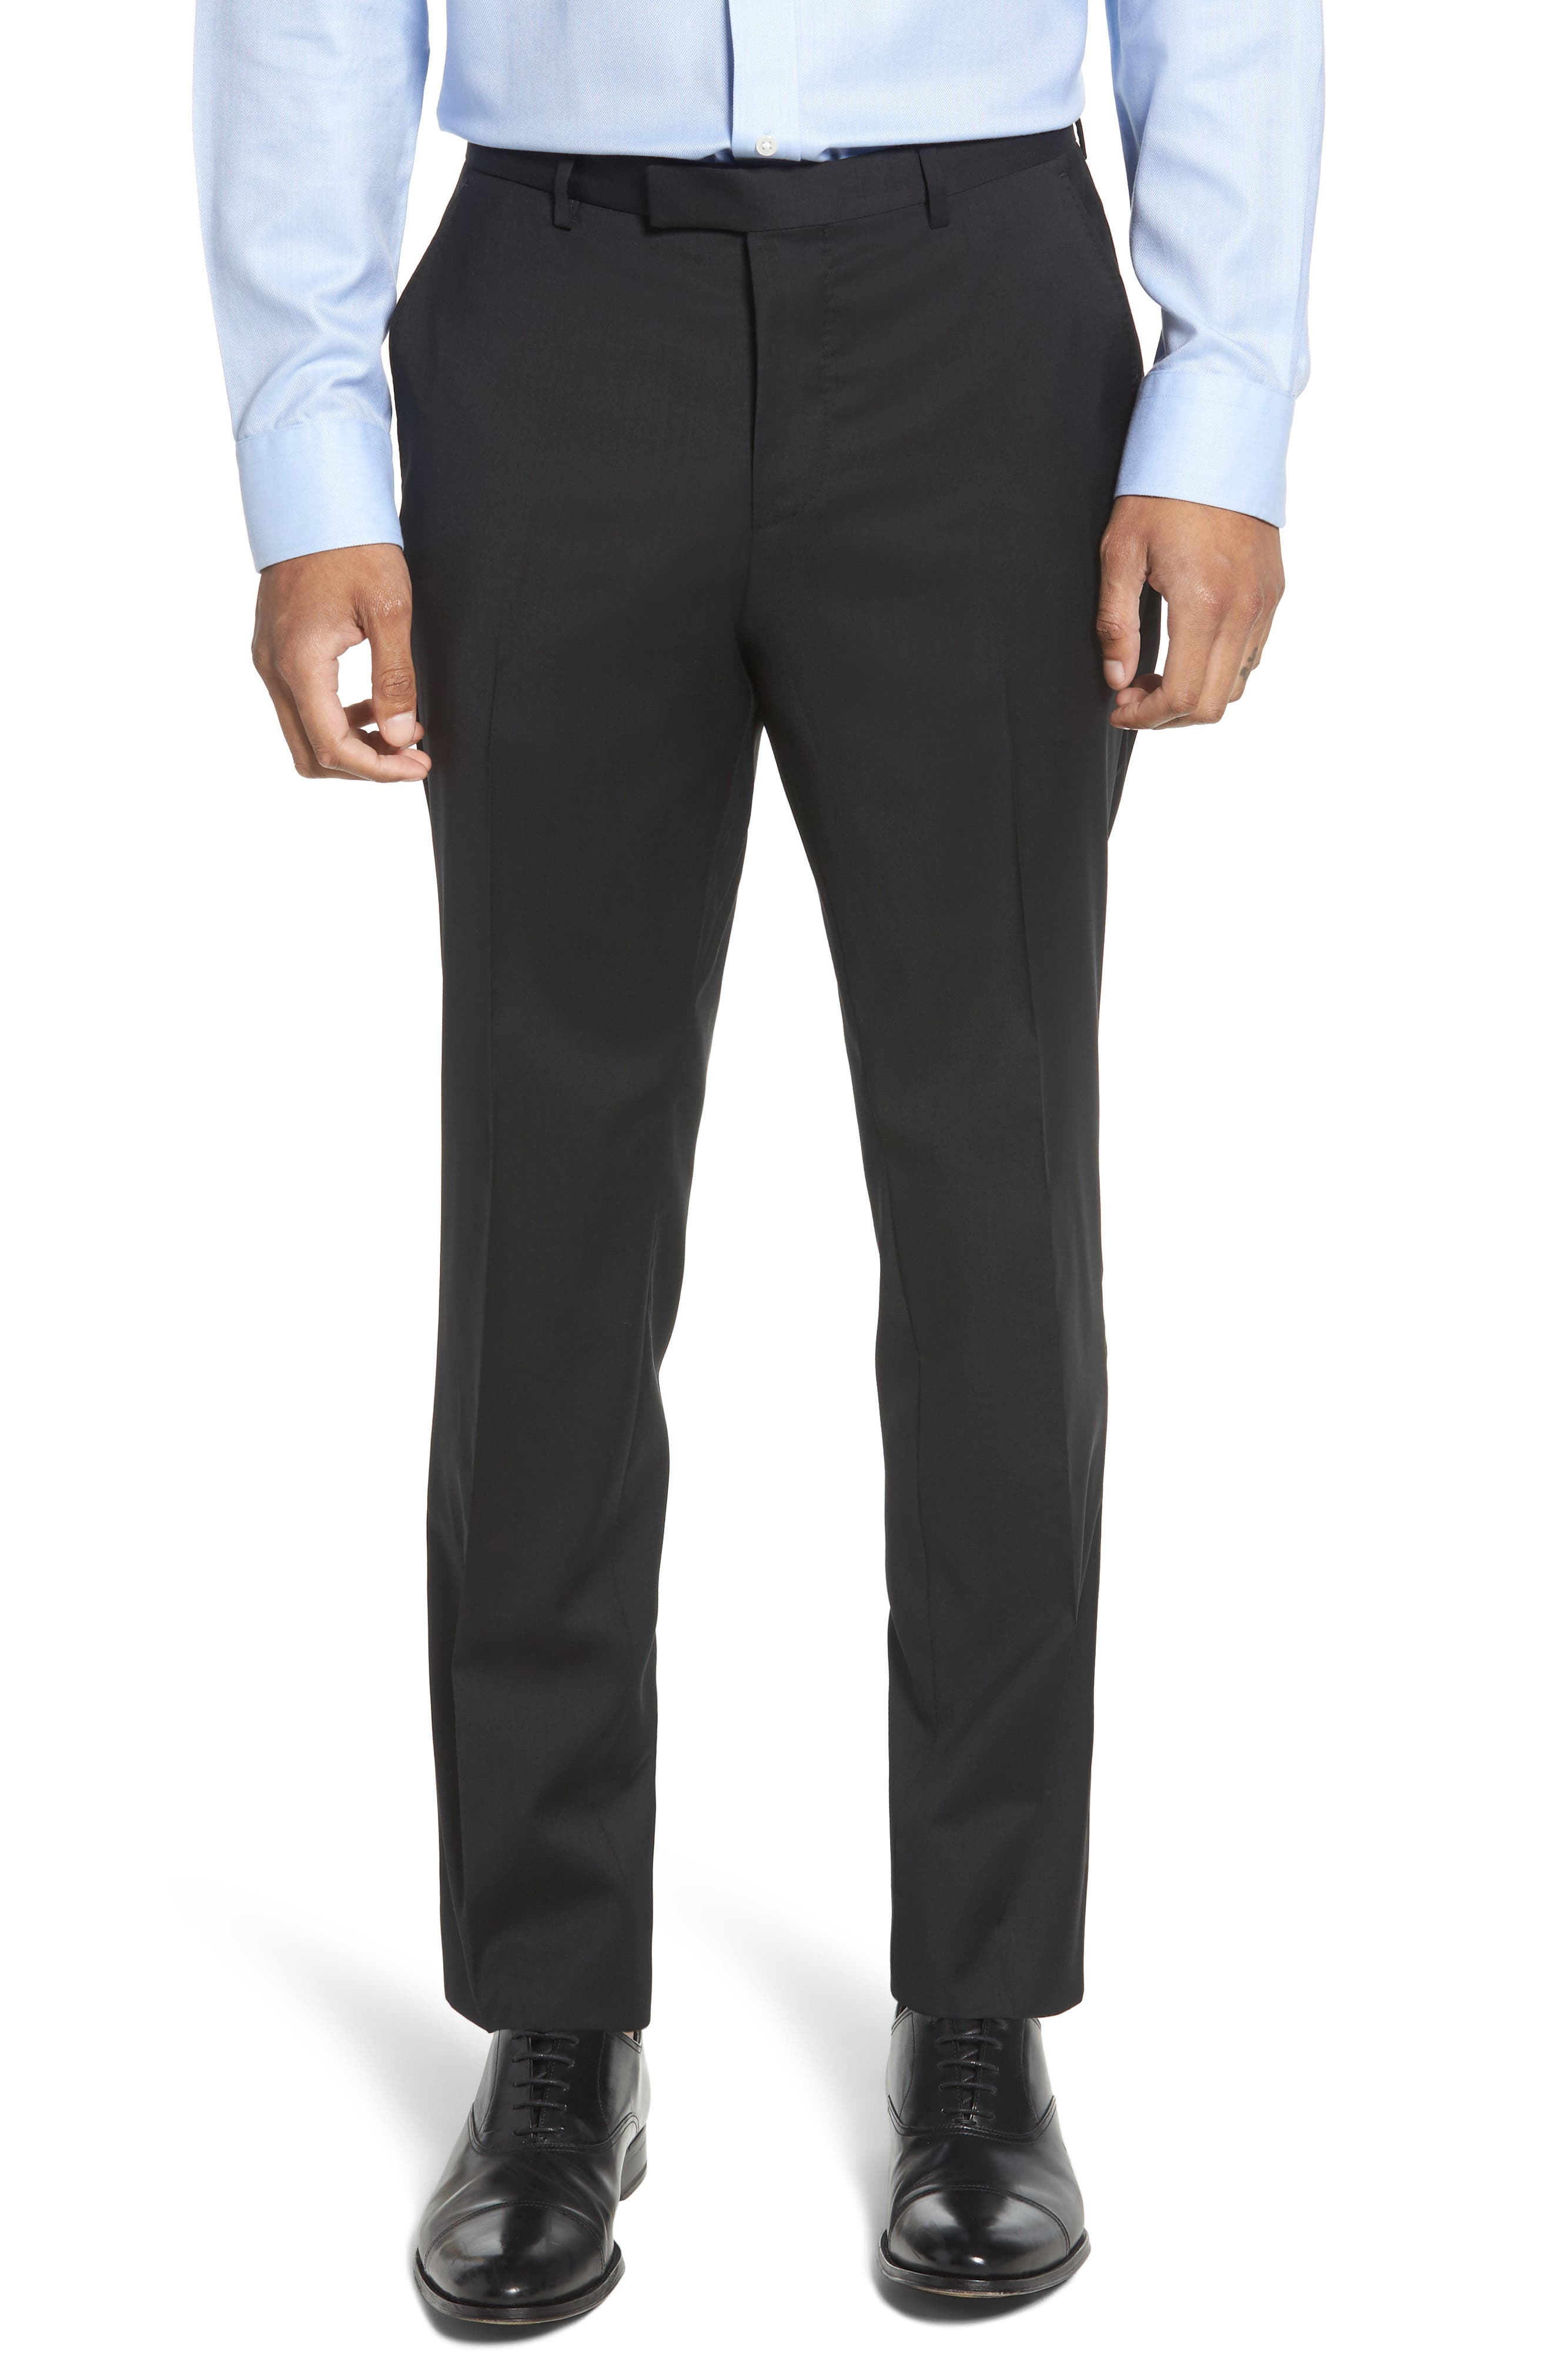 Leenon Flat Front Regular Fit Solid Wool Trousers,                         Main,                         color, BLACK